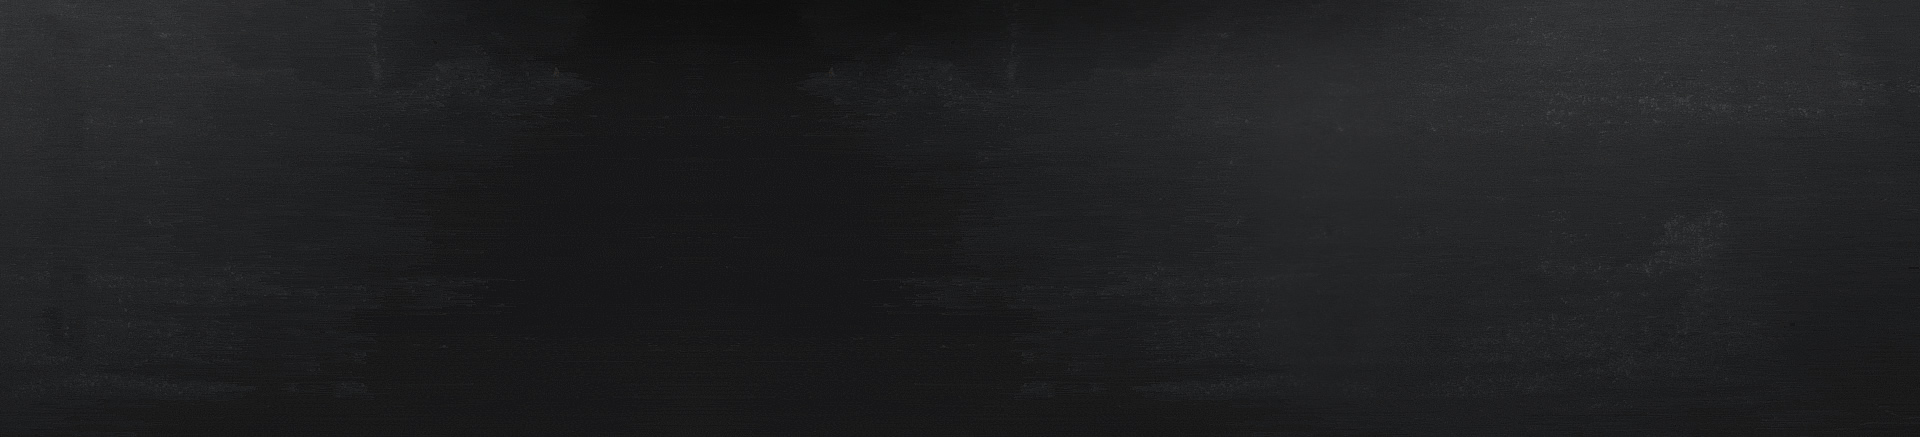 Dimensional Lettering welcome screen